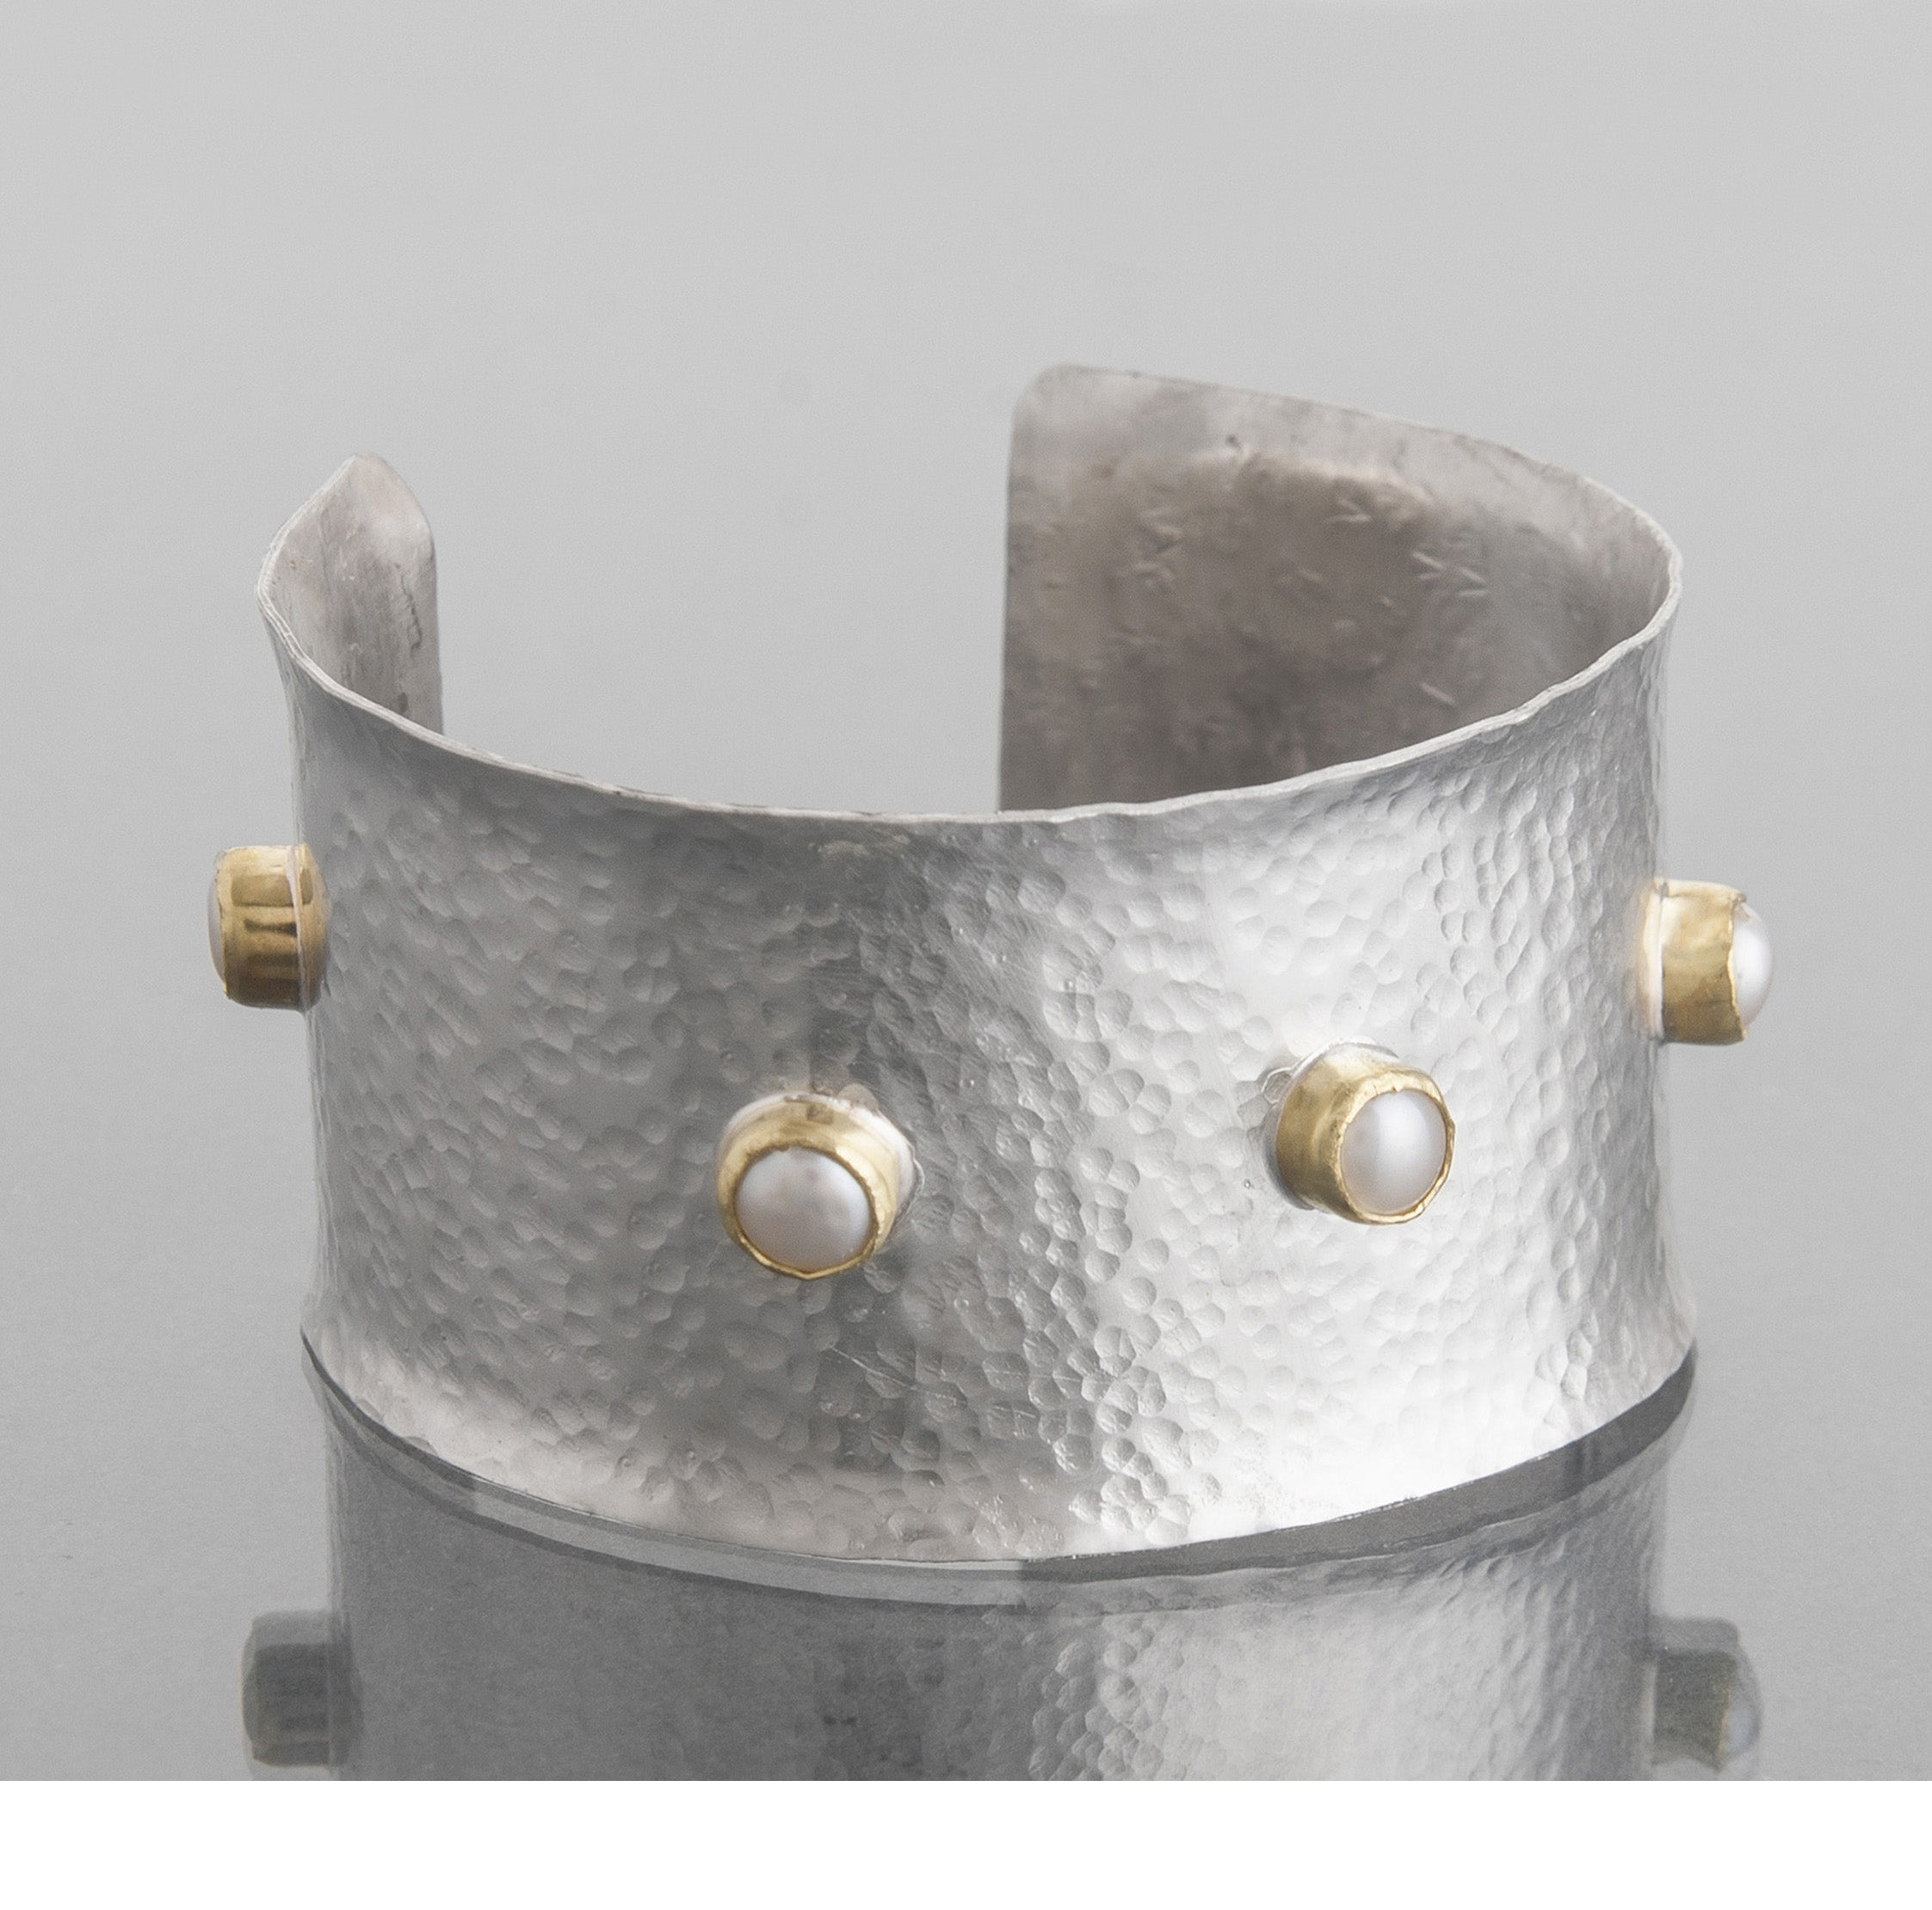 Hammered pearl cuff